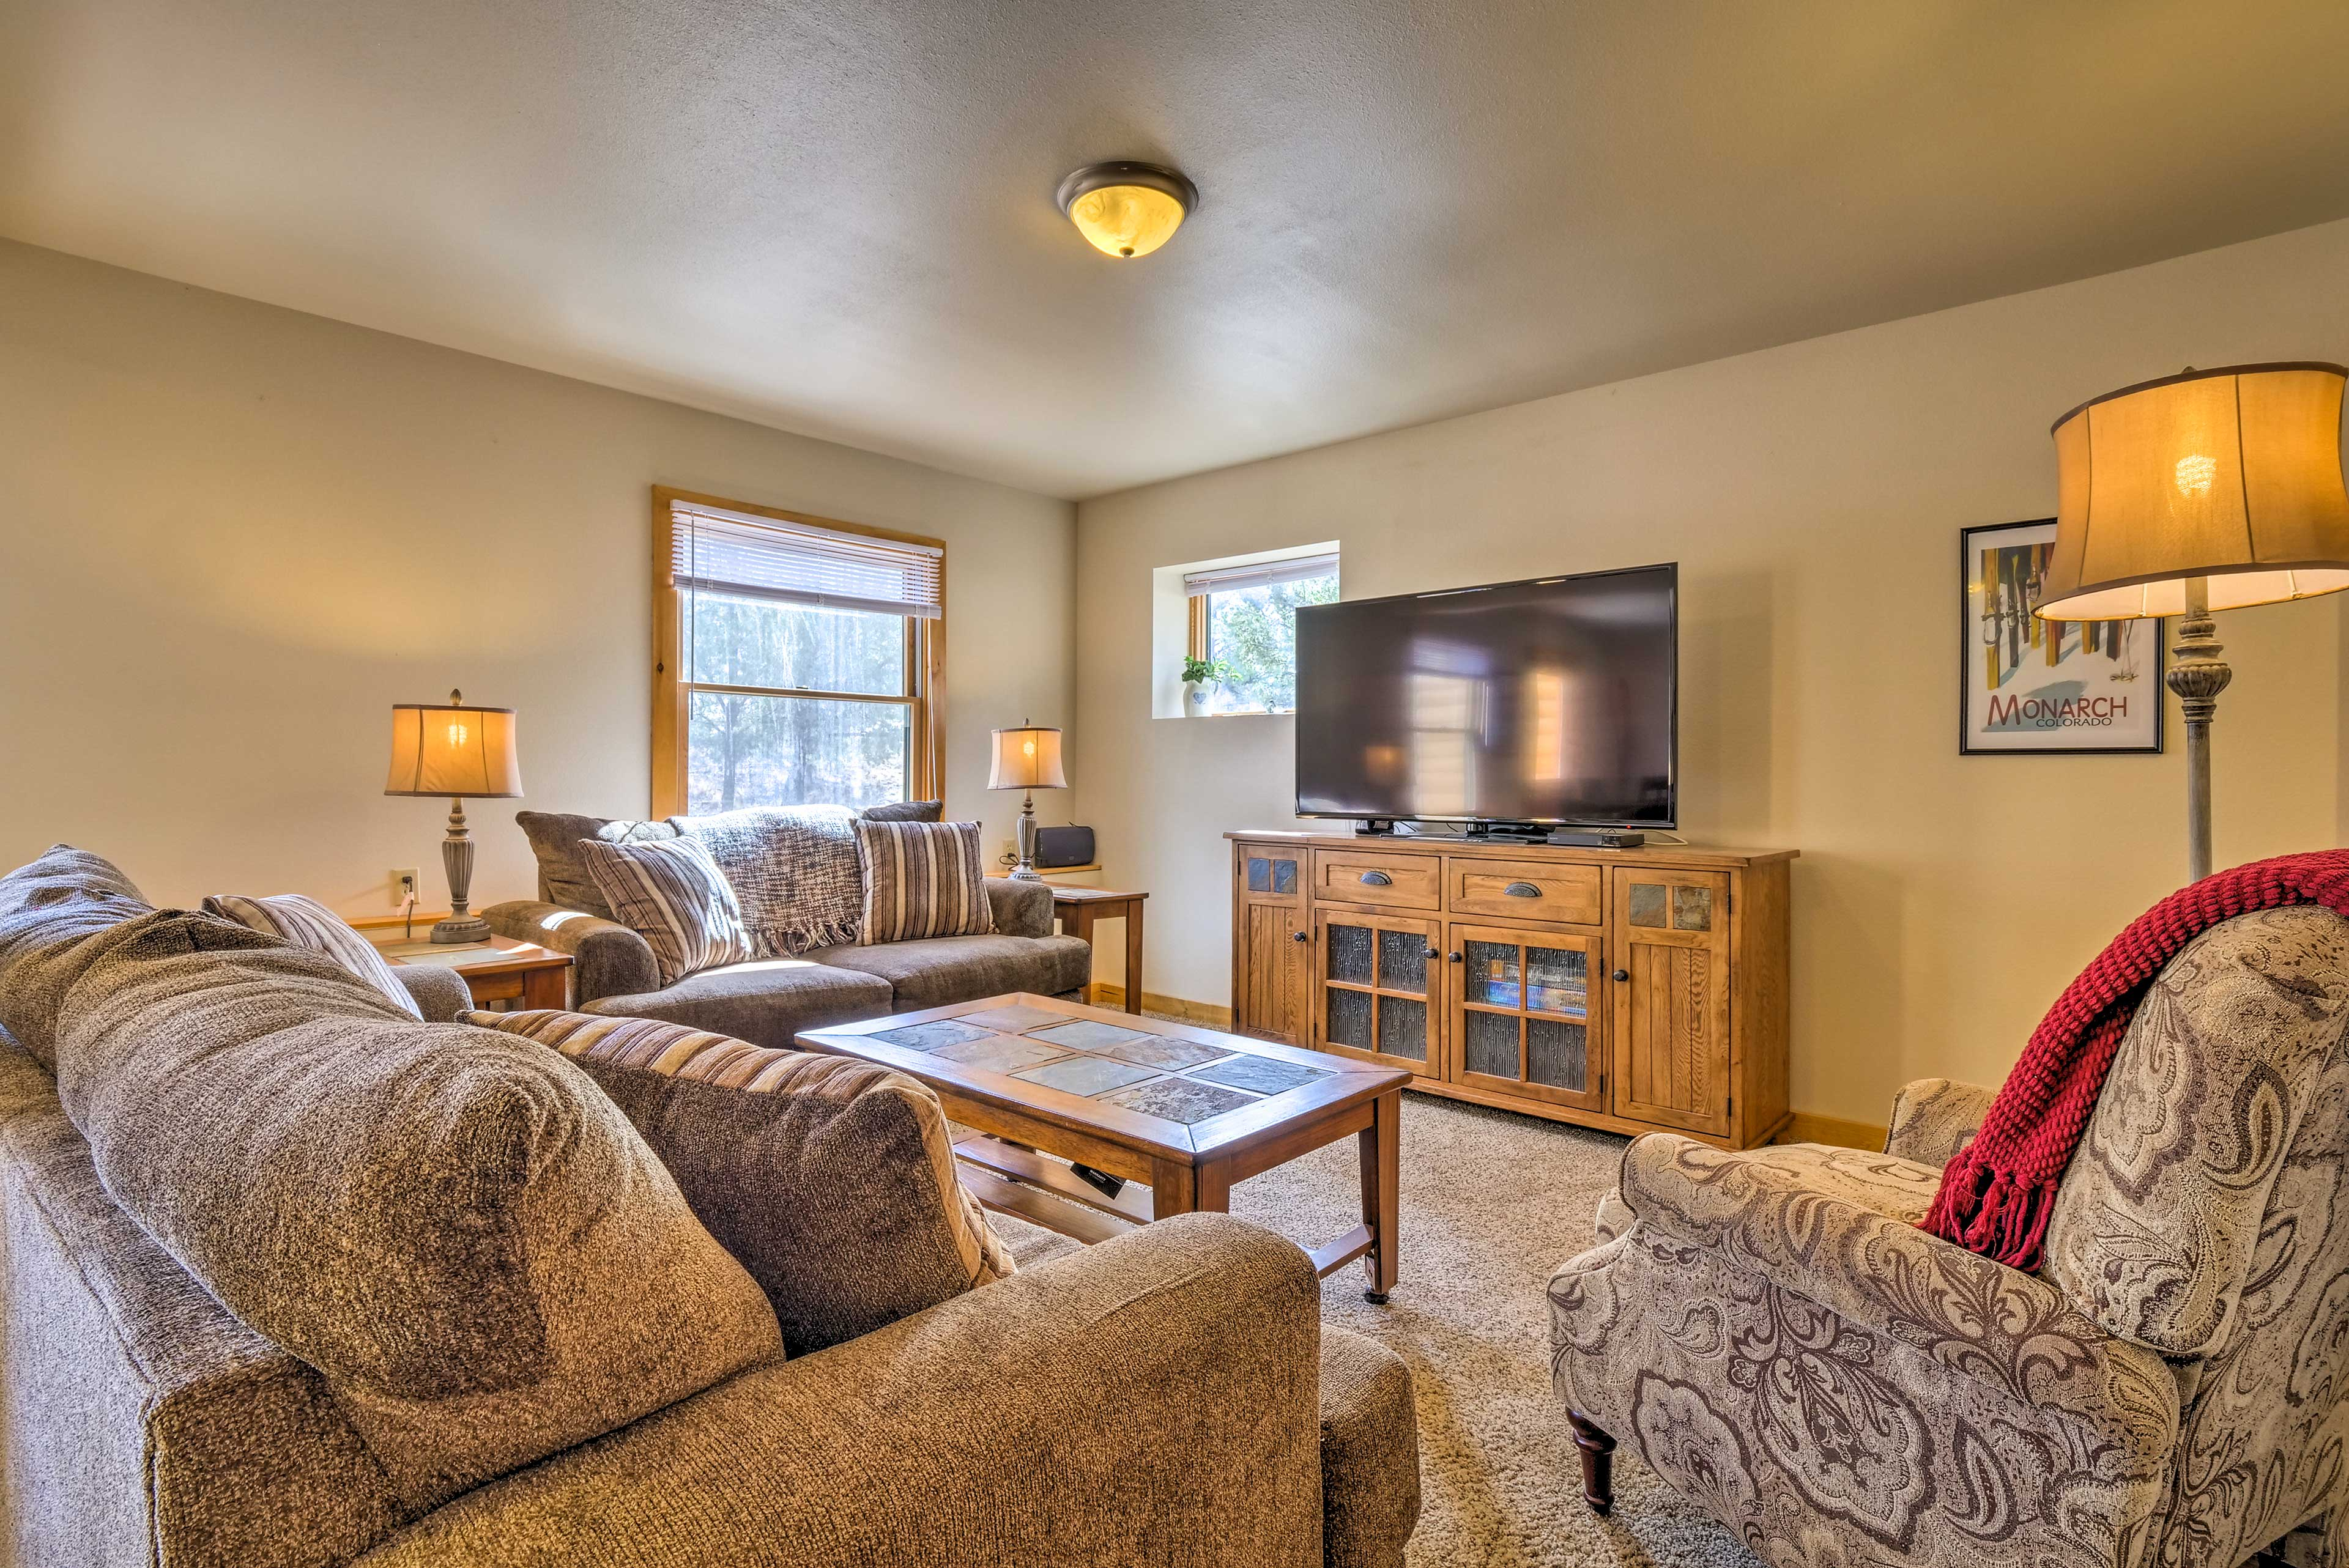 Walk down to the family room in the basement.